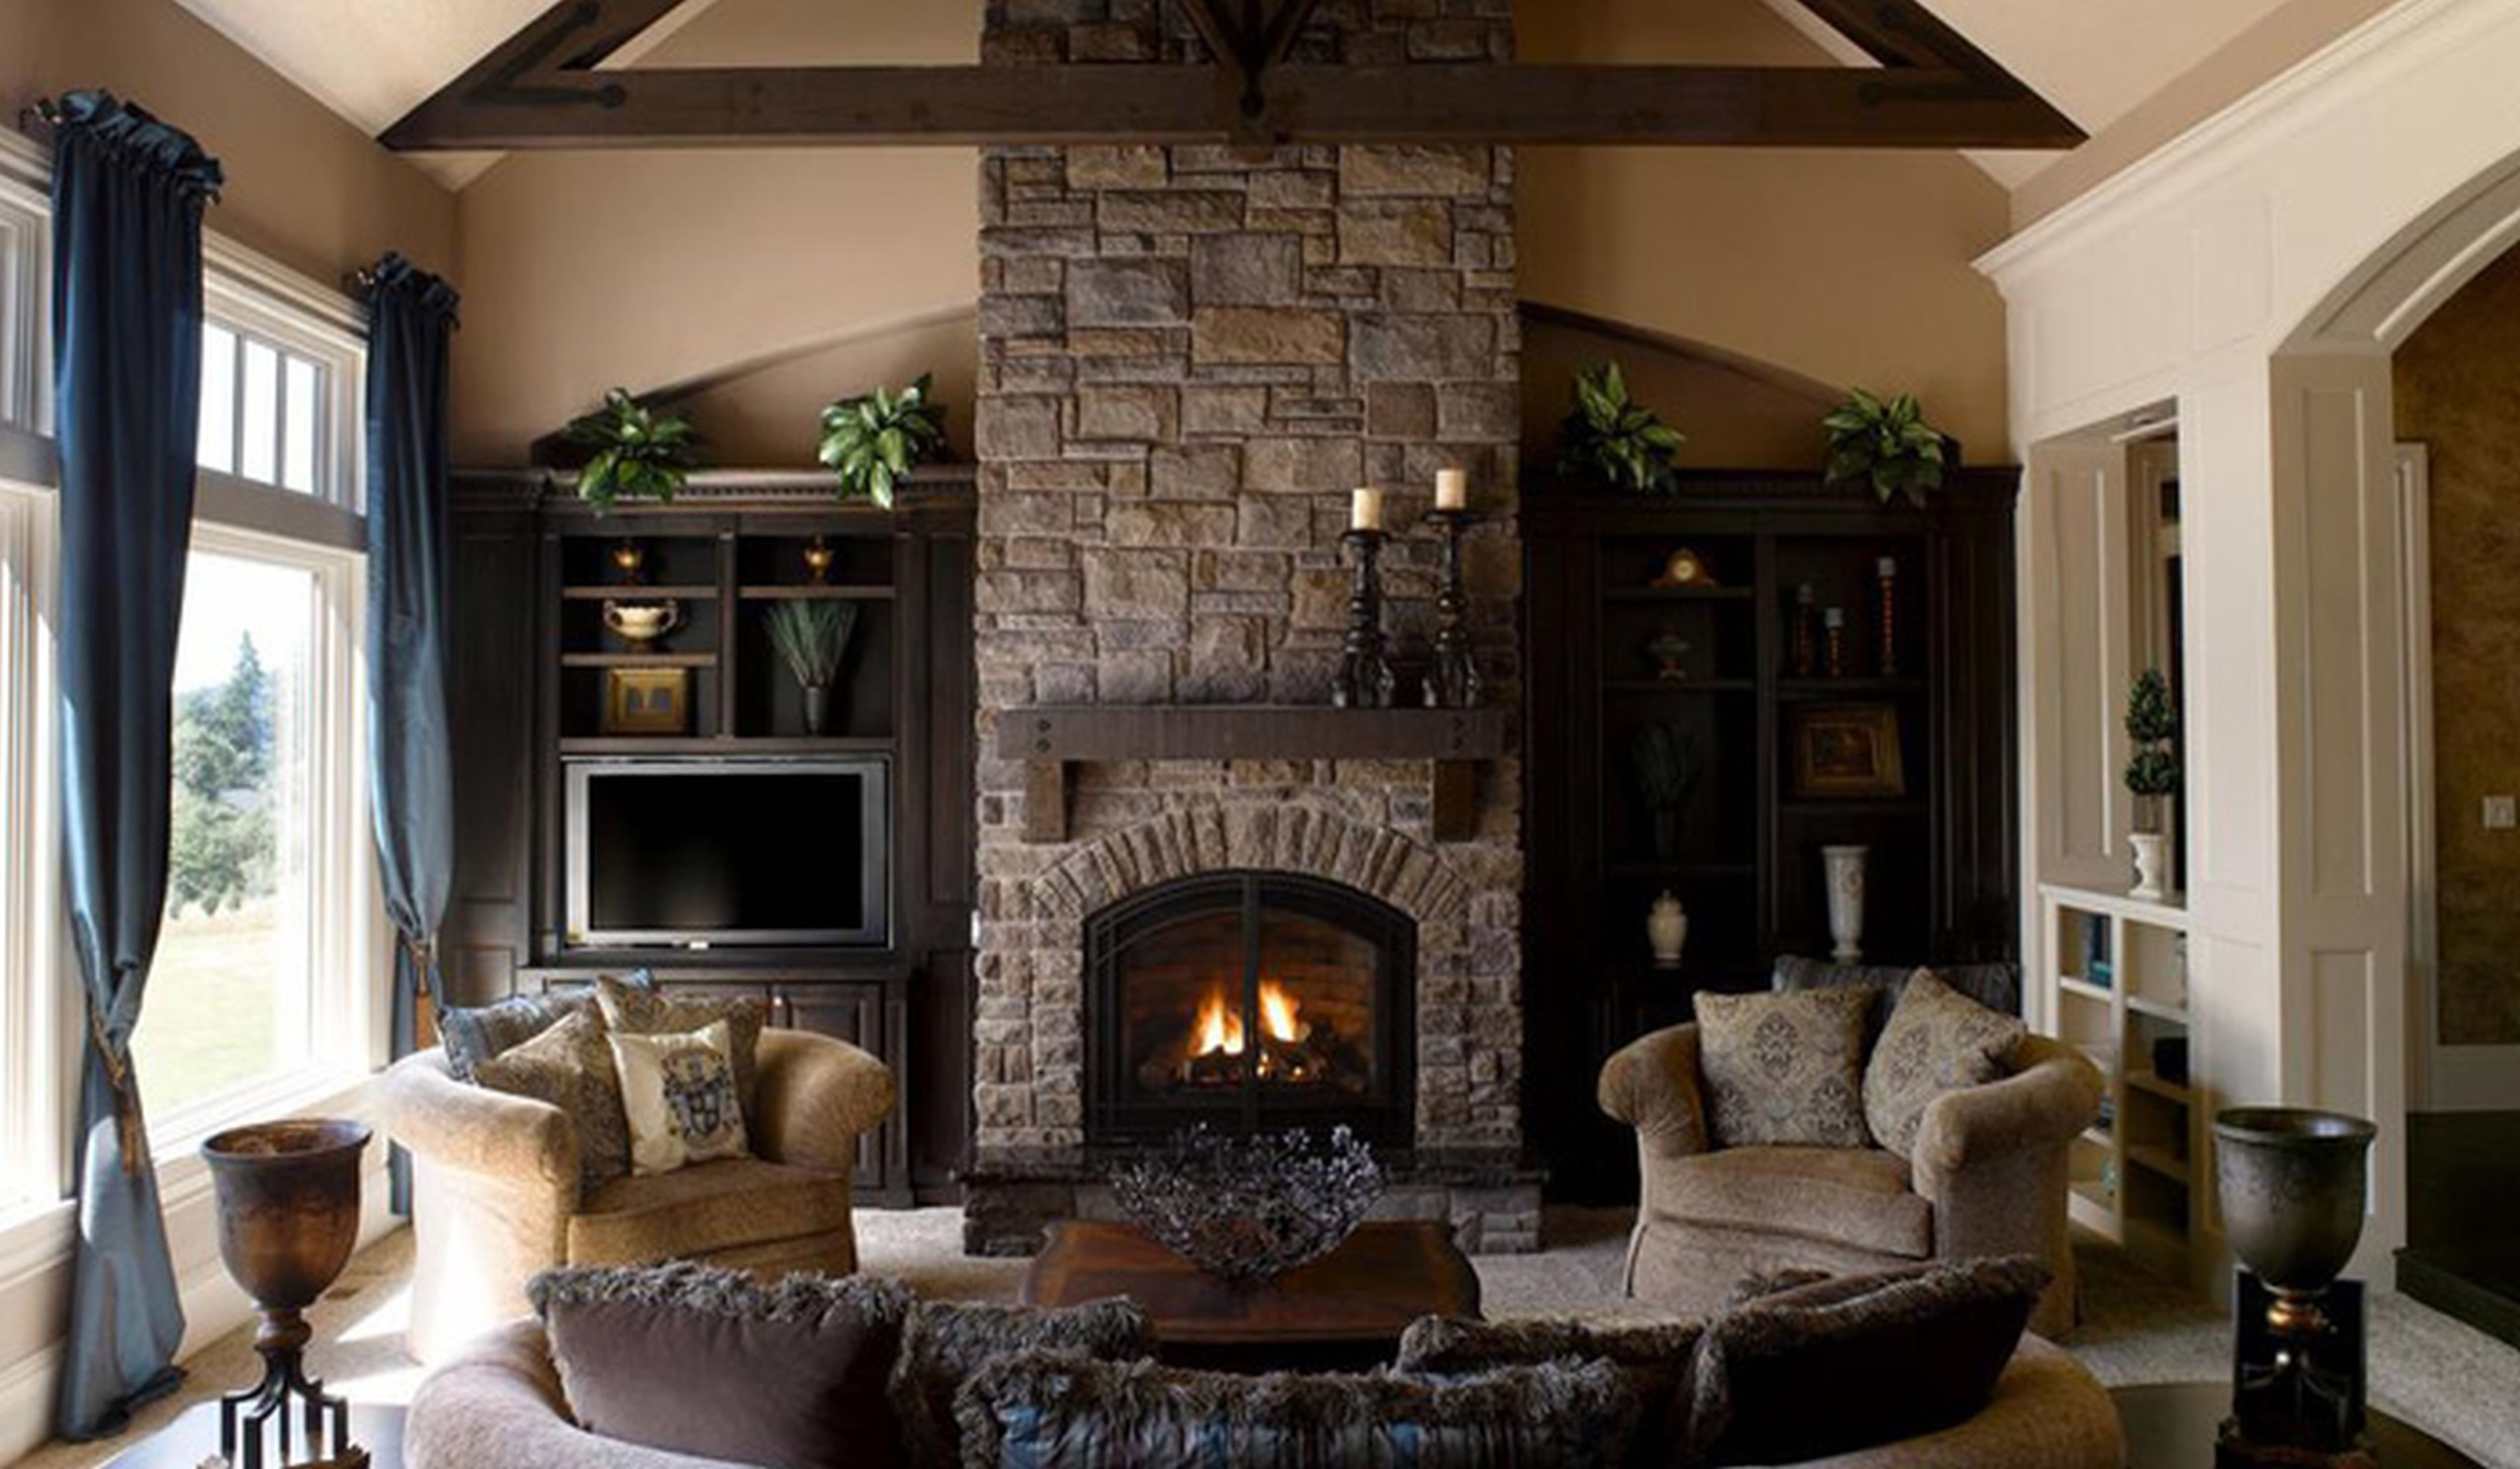 10 Unique Living Room With Fireplace Decorating Ideas condo living room with fireplace design ideashome decorating ideas